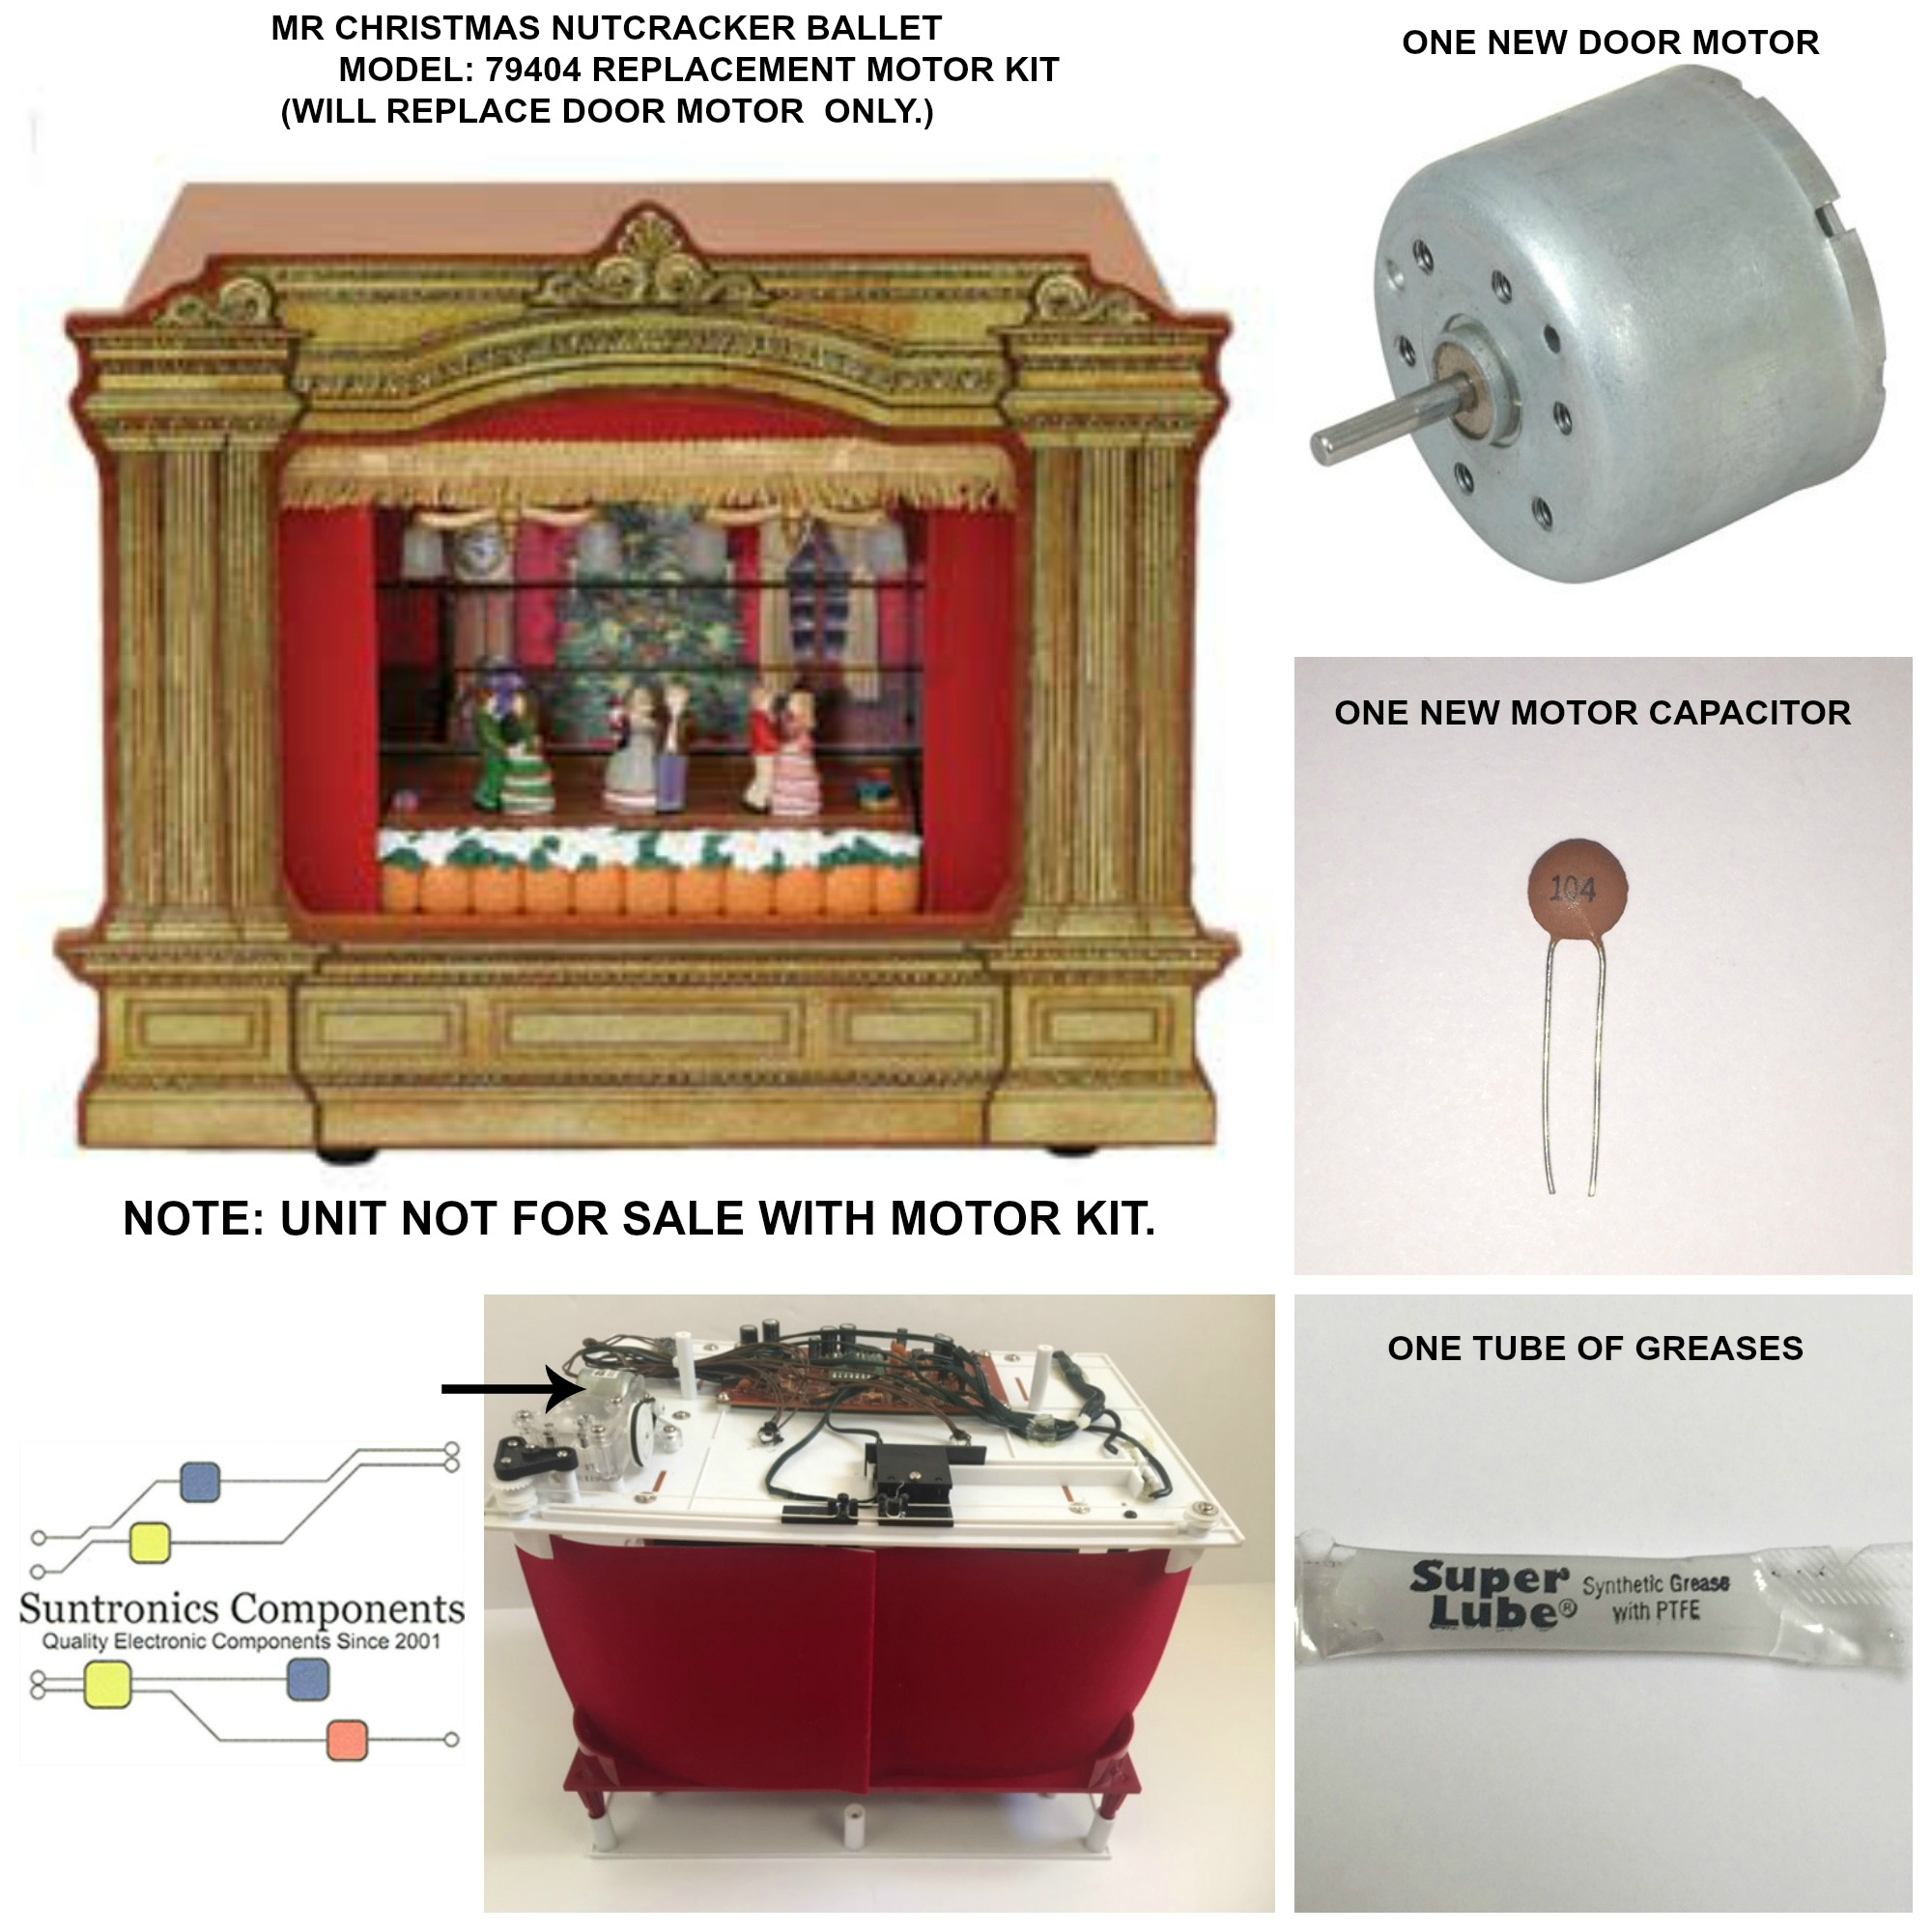 PicMonkey Image MR CHRISTMAS NUTCRACKER BALLET MODEL 79404 DOOR MOTOR.JPG